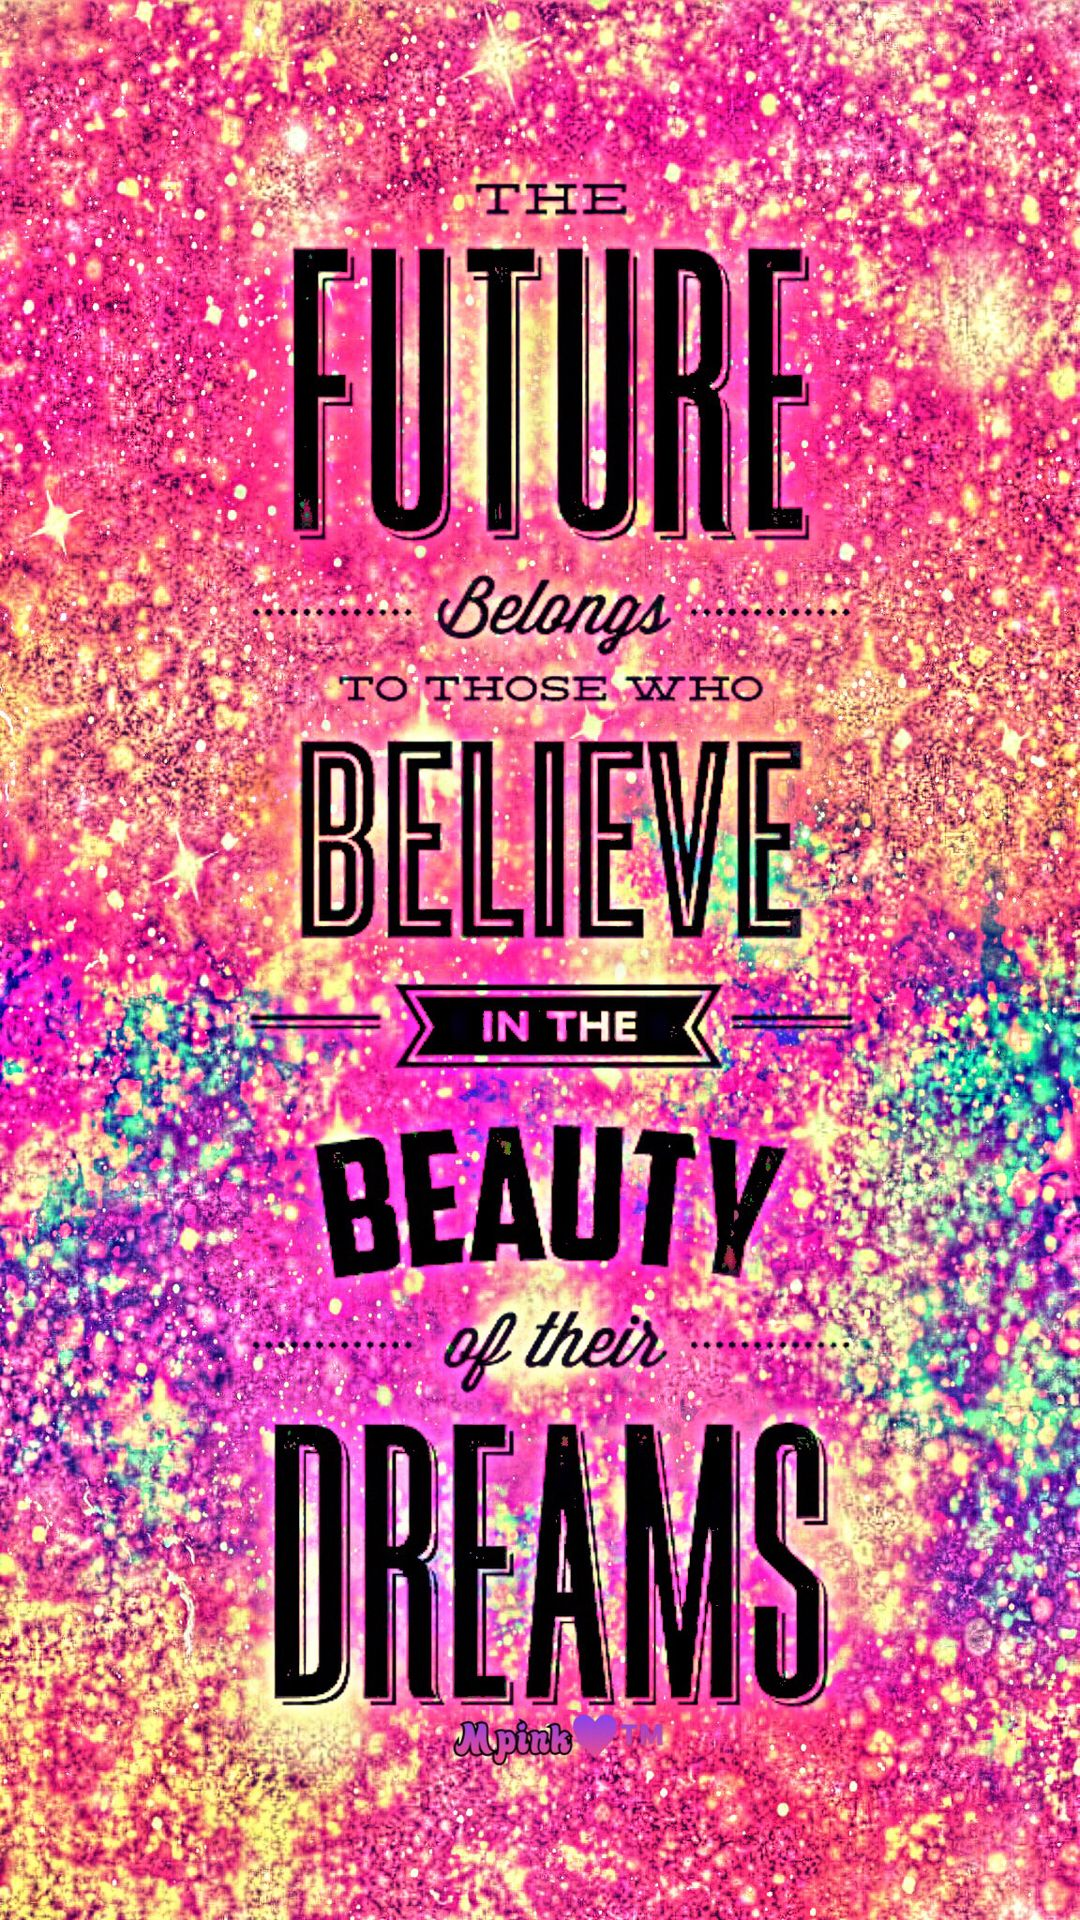 The Future Belongs To Those Who Believe Galaxy Wallpaper